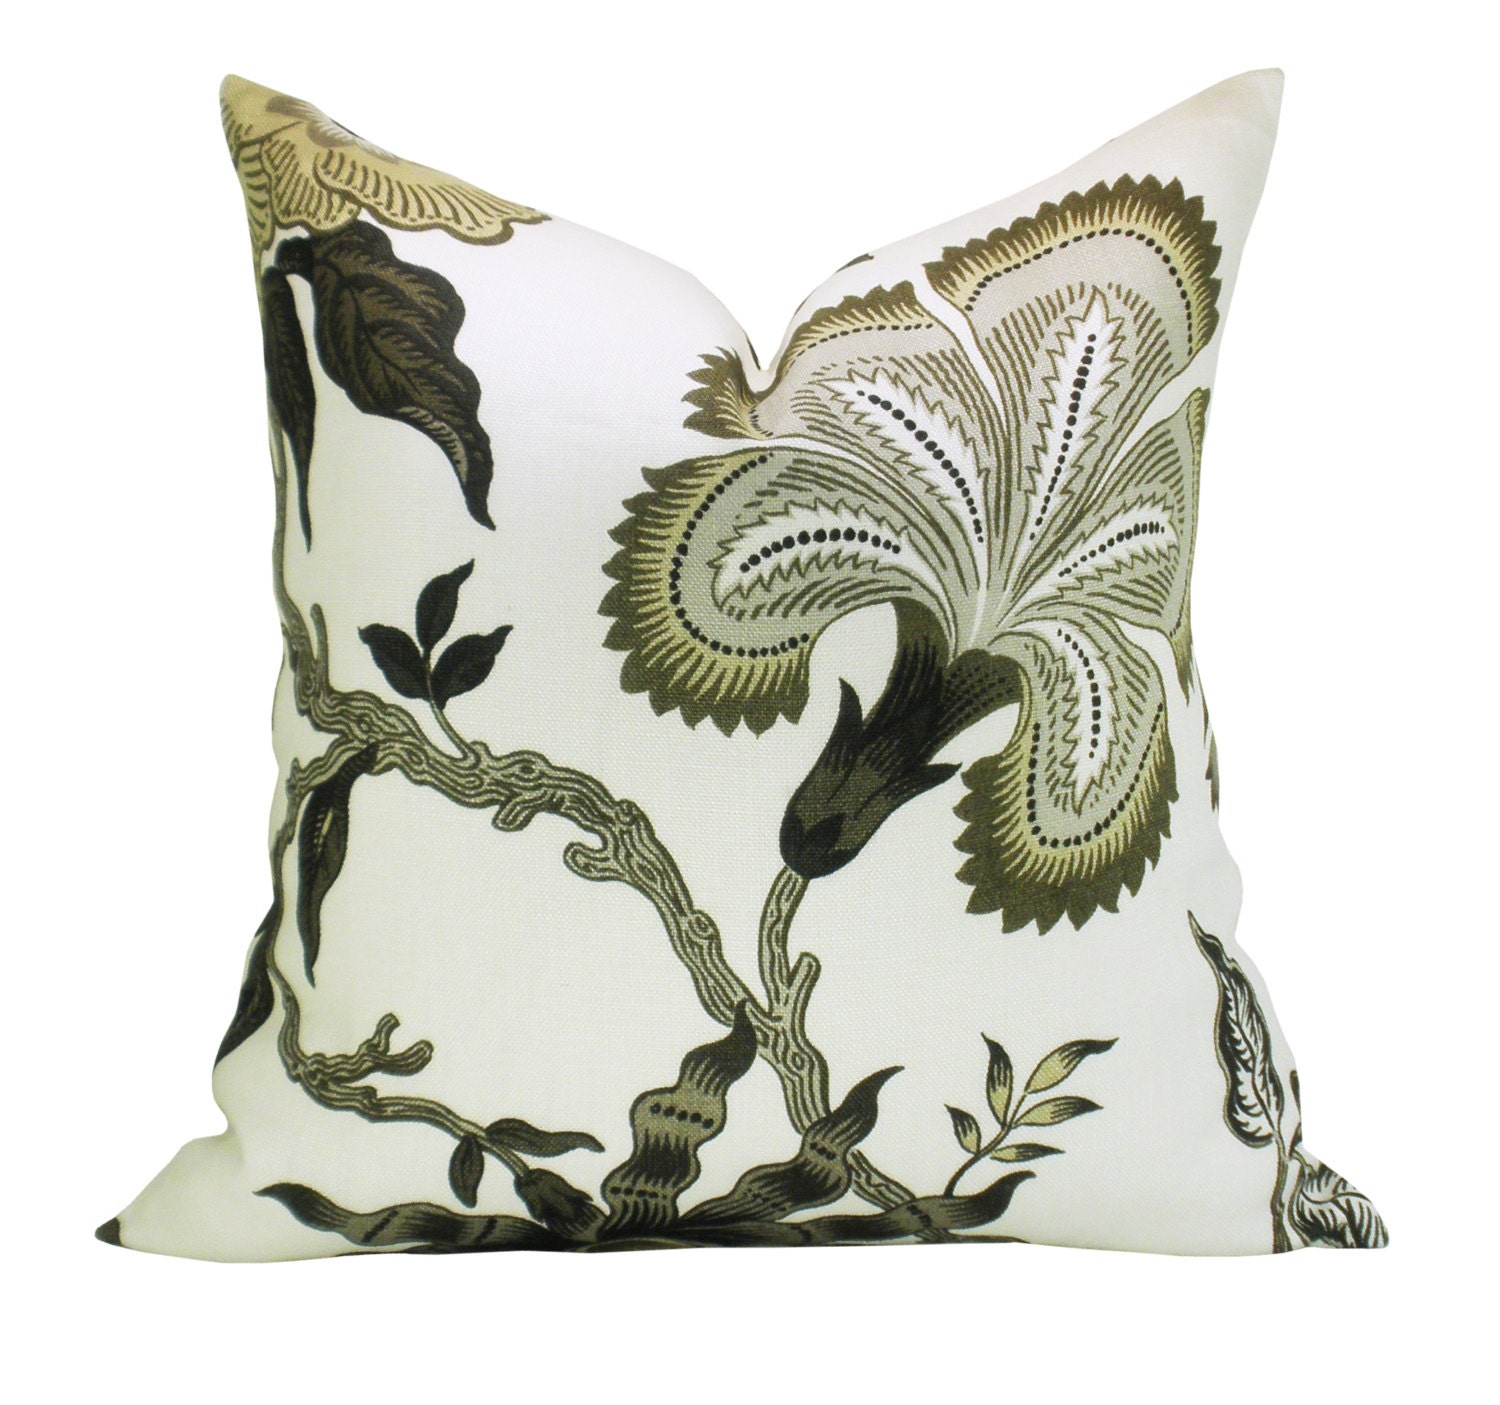 Hothouse Flowers pillow cover in Dusk